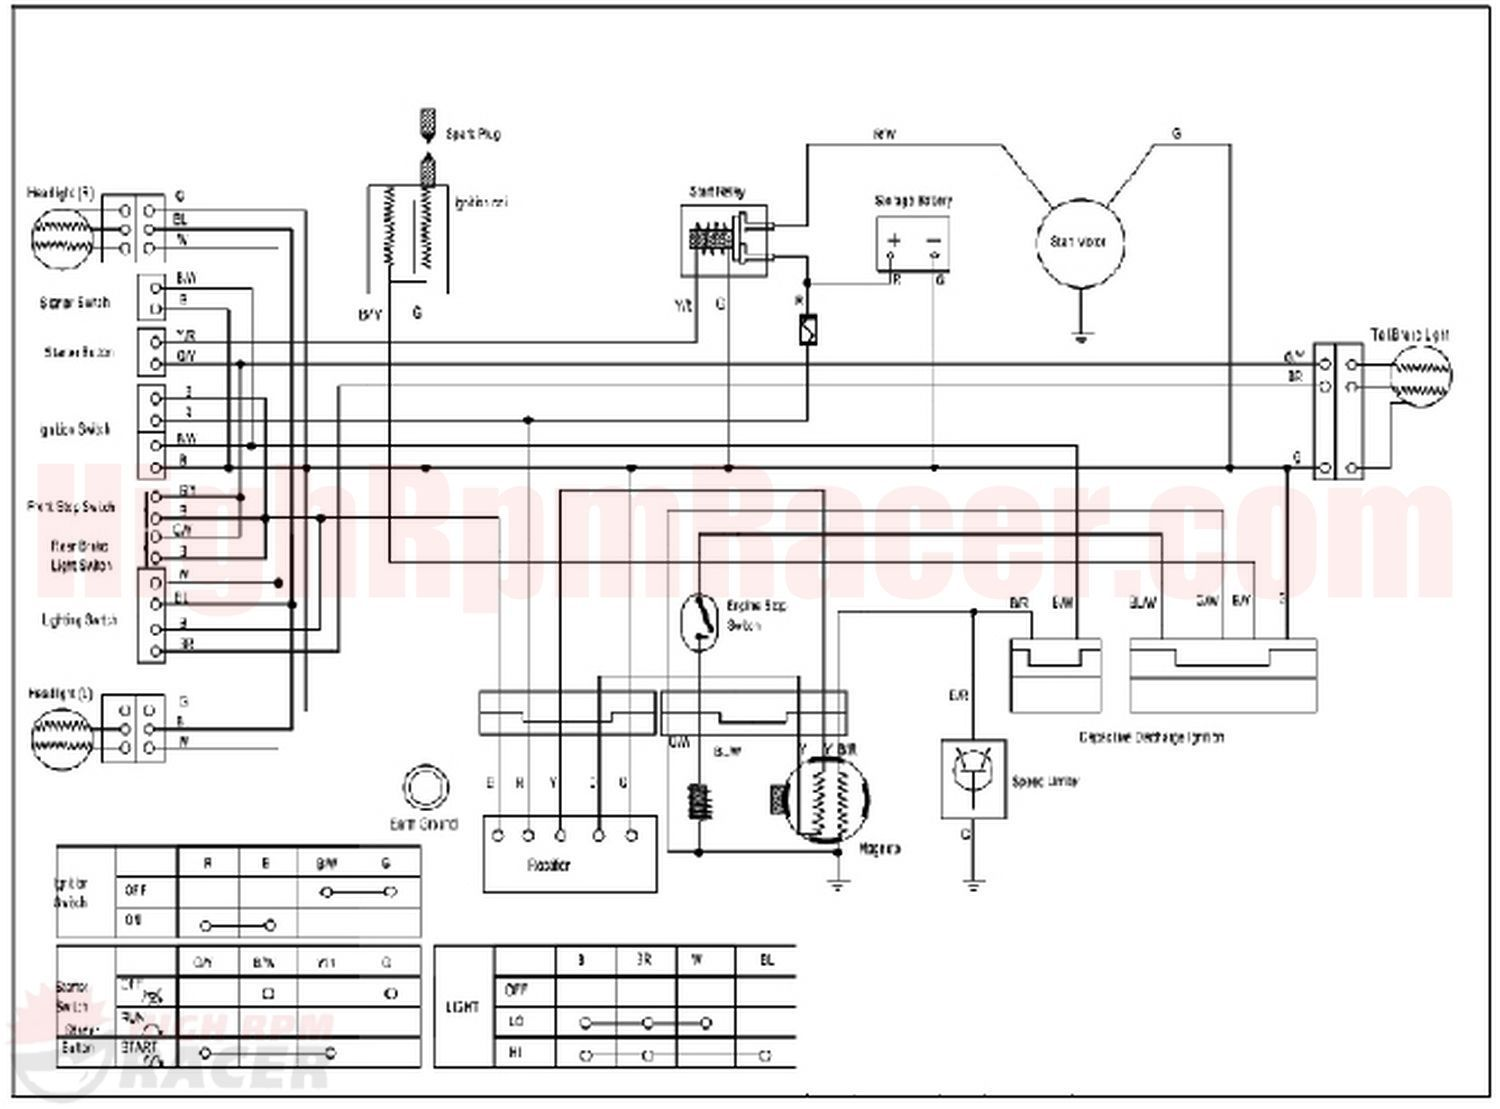 Baja Engine Diagram Schematics Wiring Diagrams Subaru Fuse Box 90cc Atv U2022 Rh Parntesis Co Vw